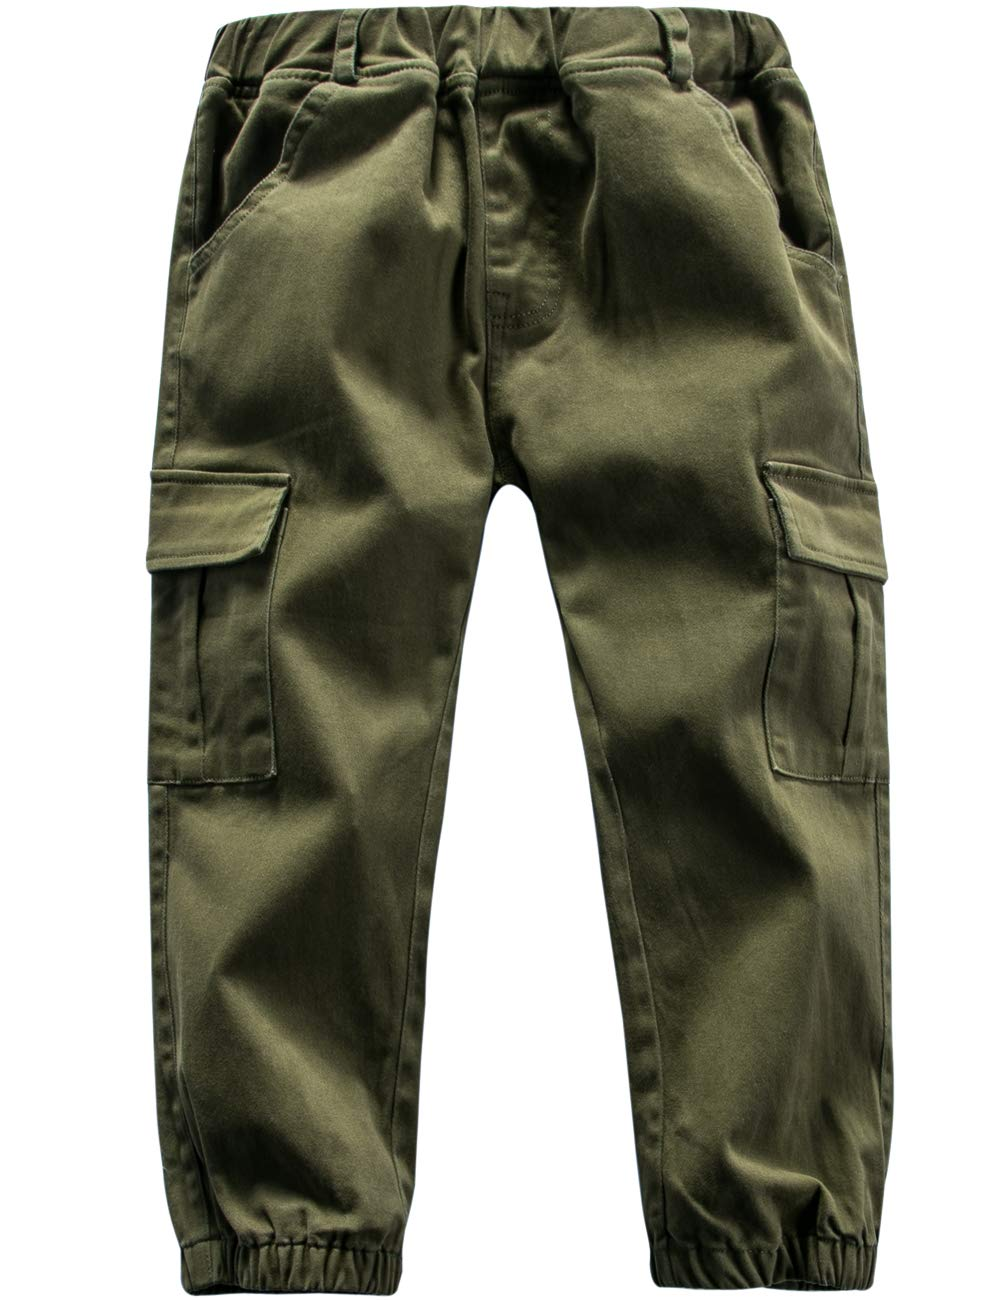 BYCR Boys' Cotton Cargo Pants Elastic Waist Slim Fit Multi Pocket Chino Joggers (Army Green, 130 (US Size 6/7)) by BYCR